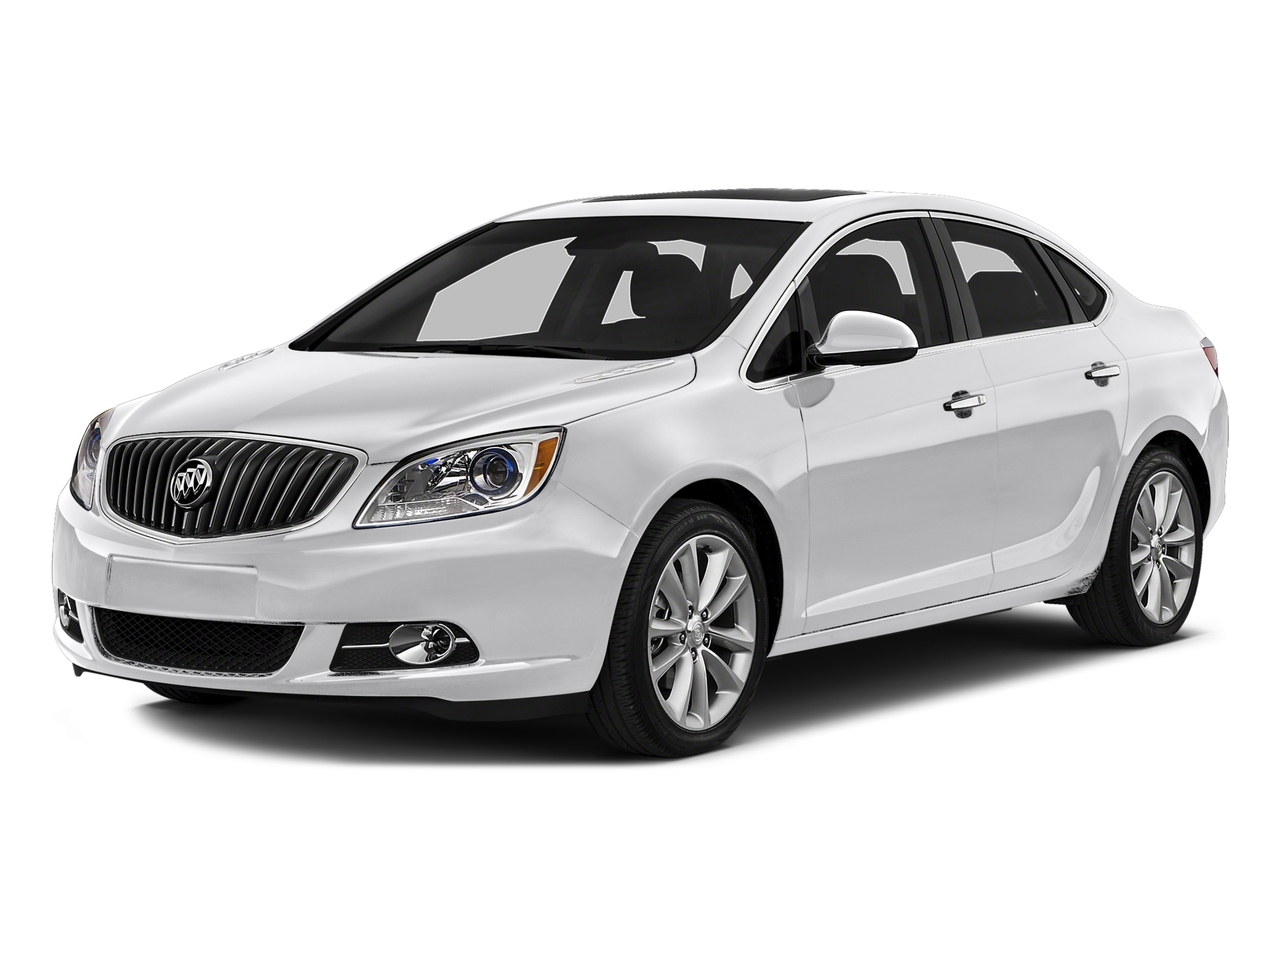 Summit White 2016 Buick Verano LEATHER GROUP 4dr Car Lexington NC